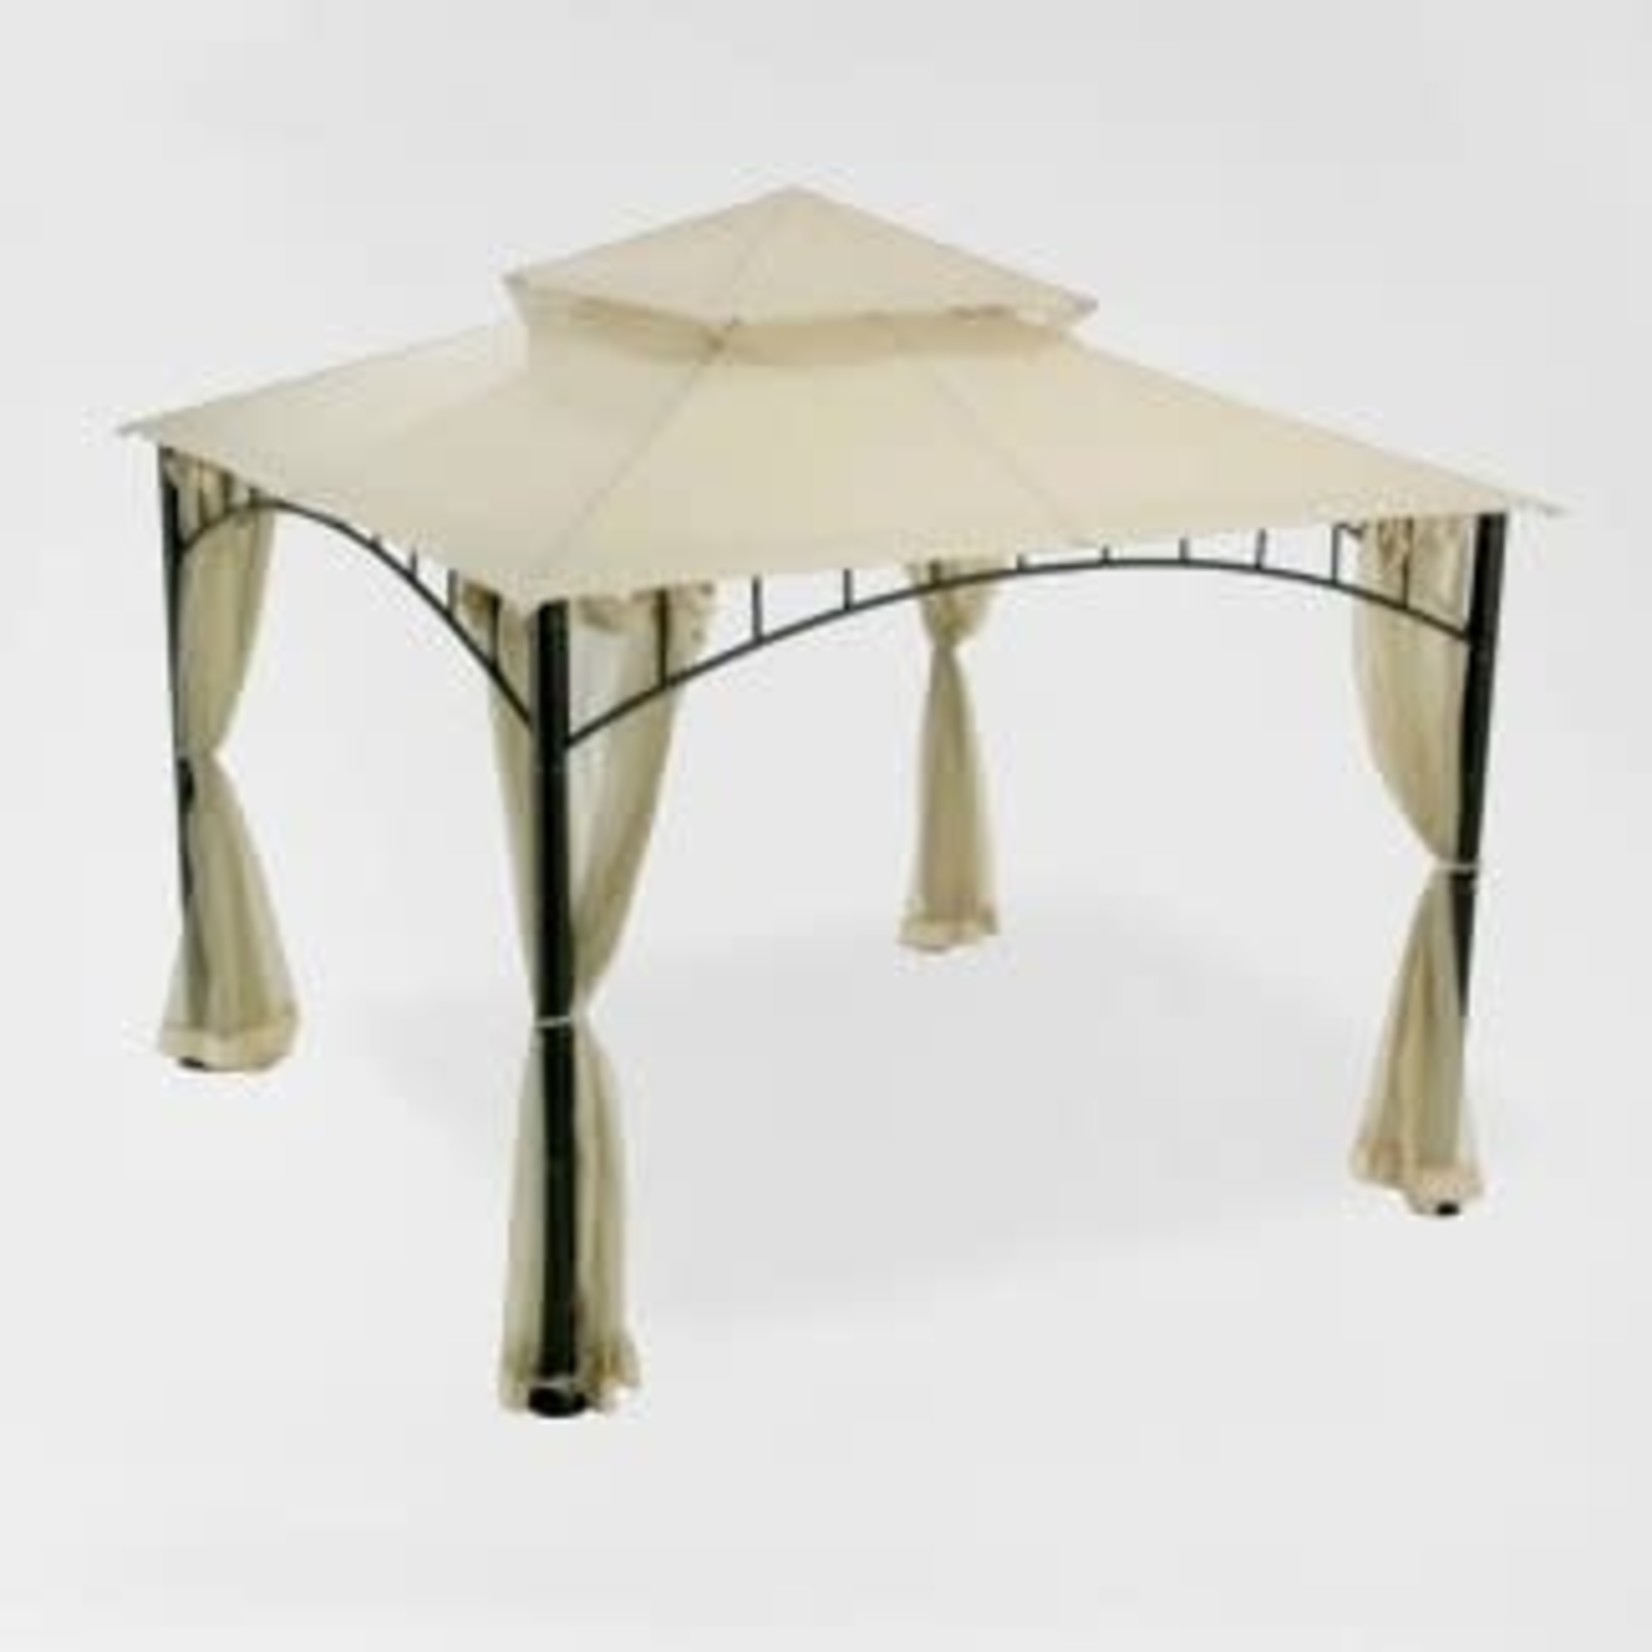 Madaga Replacement Canopy Beige - Garden Winds ** TOP CANOPY 2 TIER ONLY